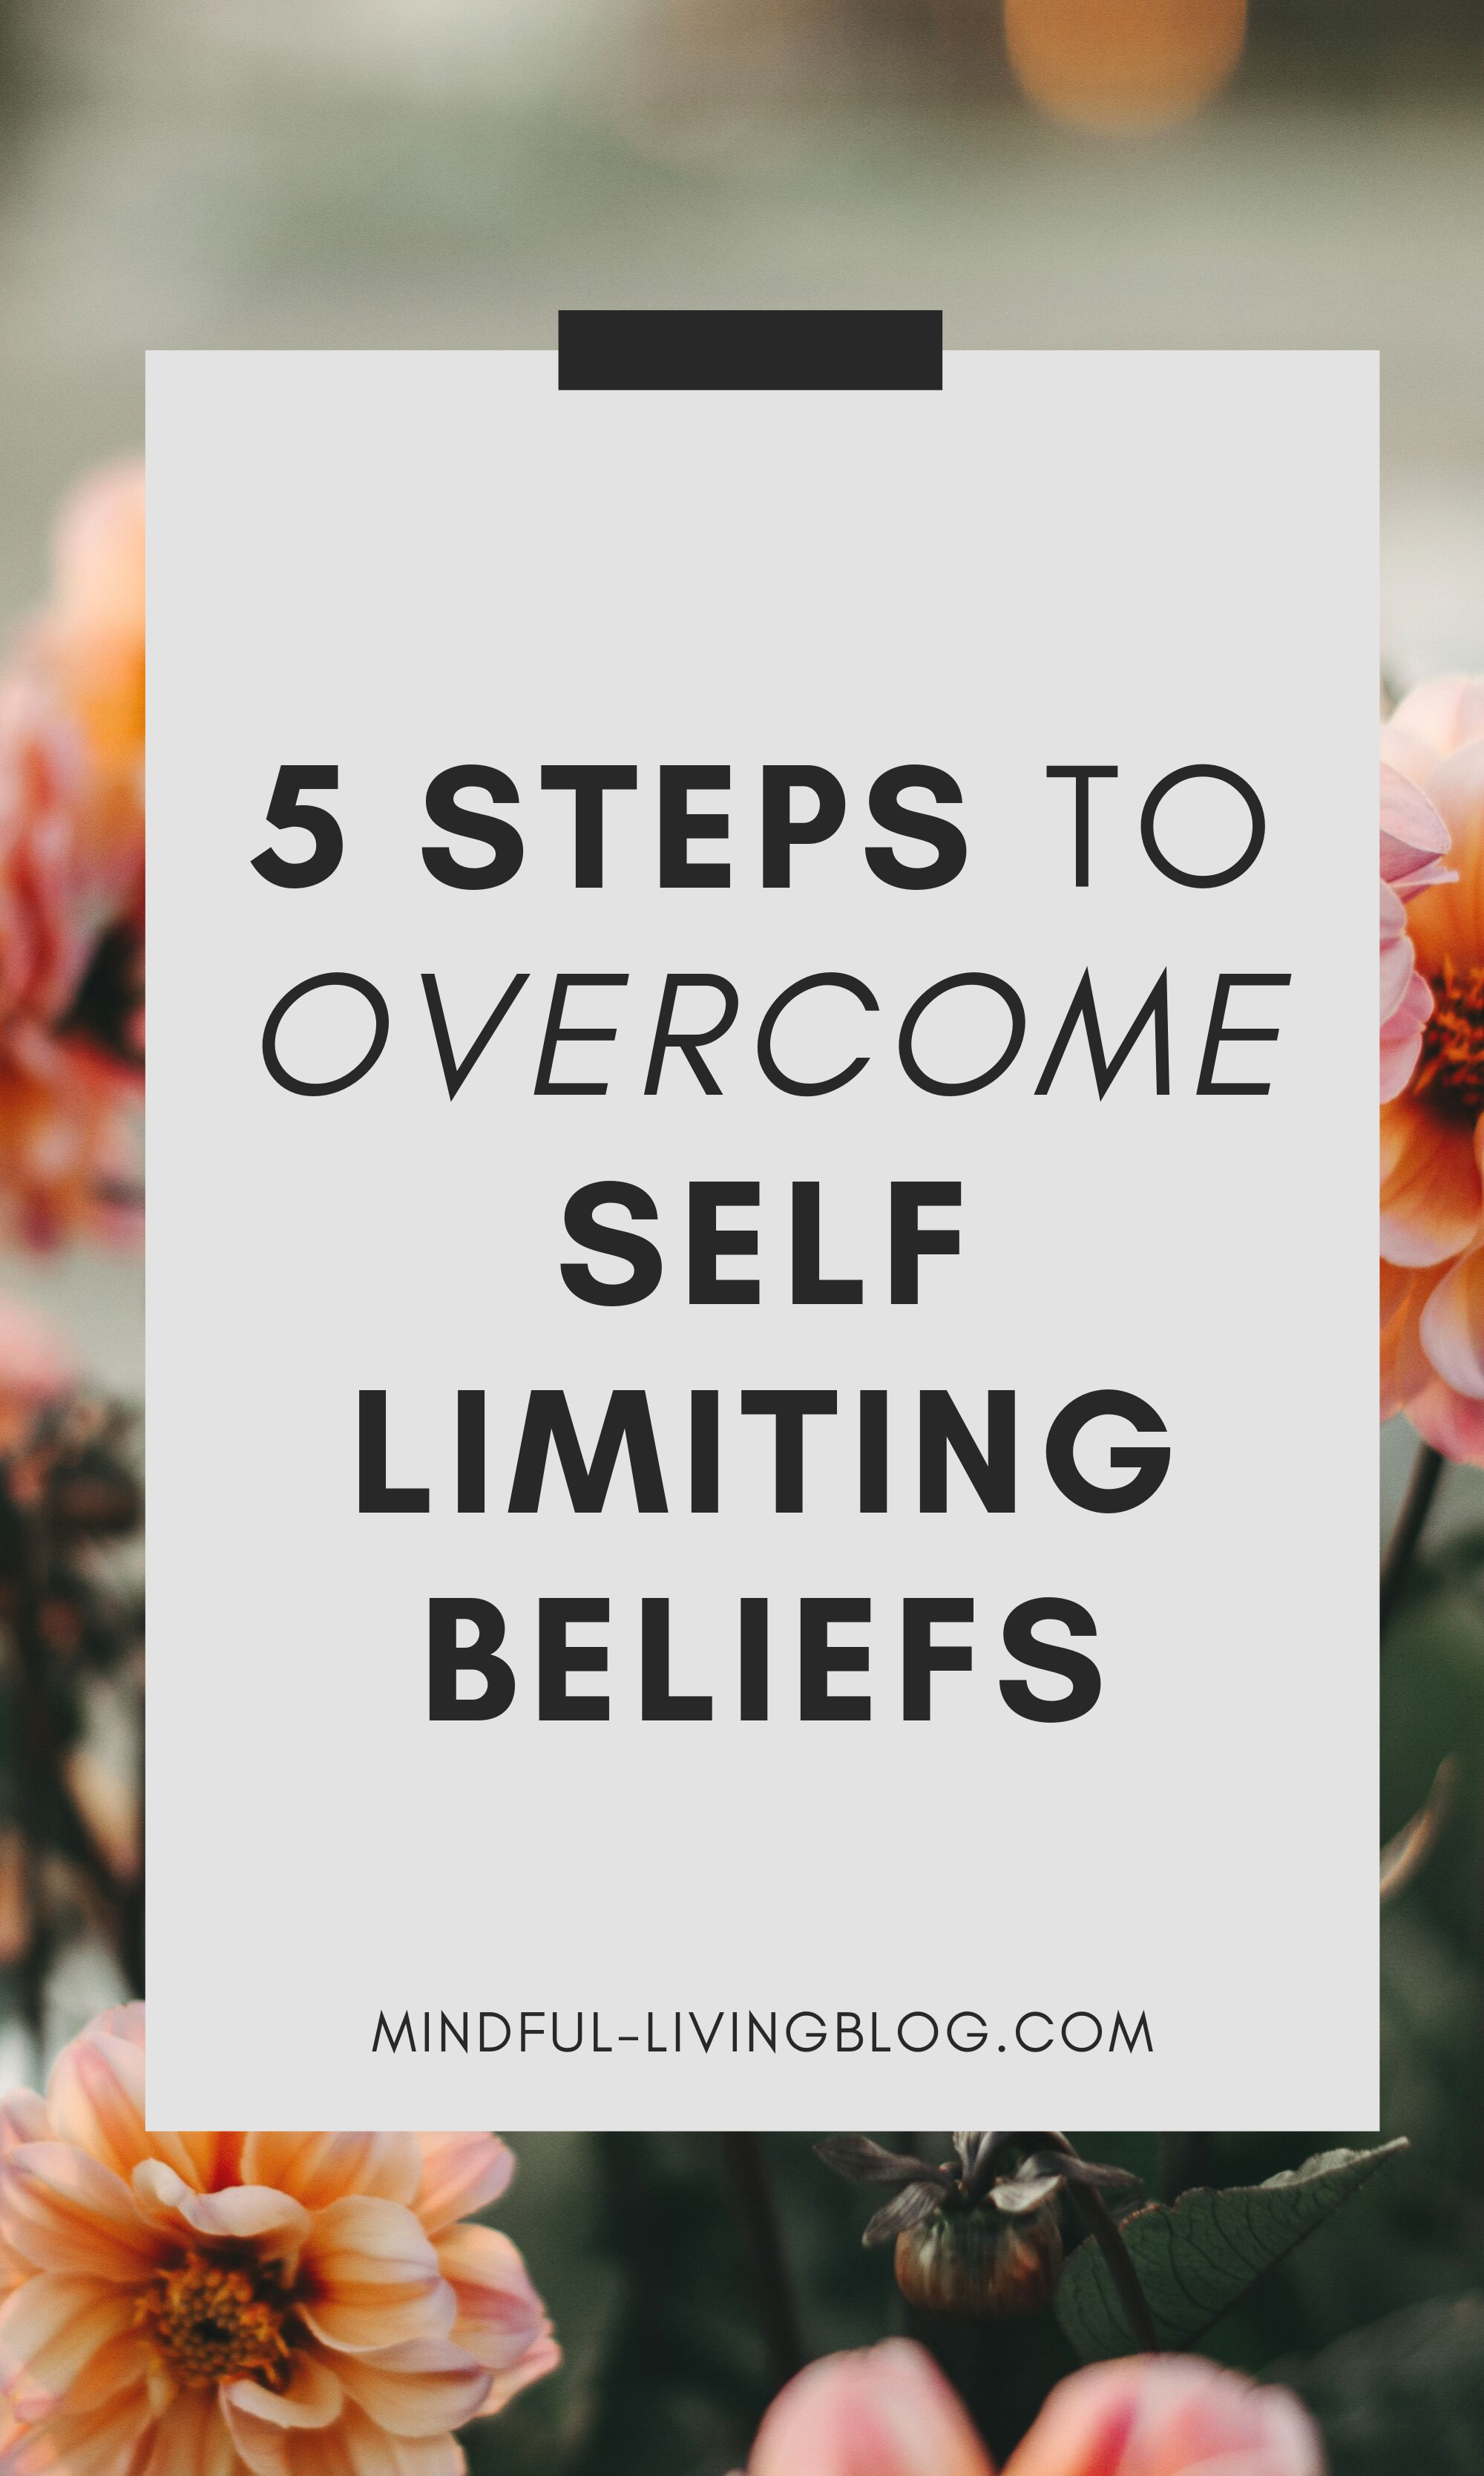 5 Steps To Overcome Self Limiting Beliefs Downloadable